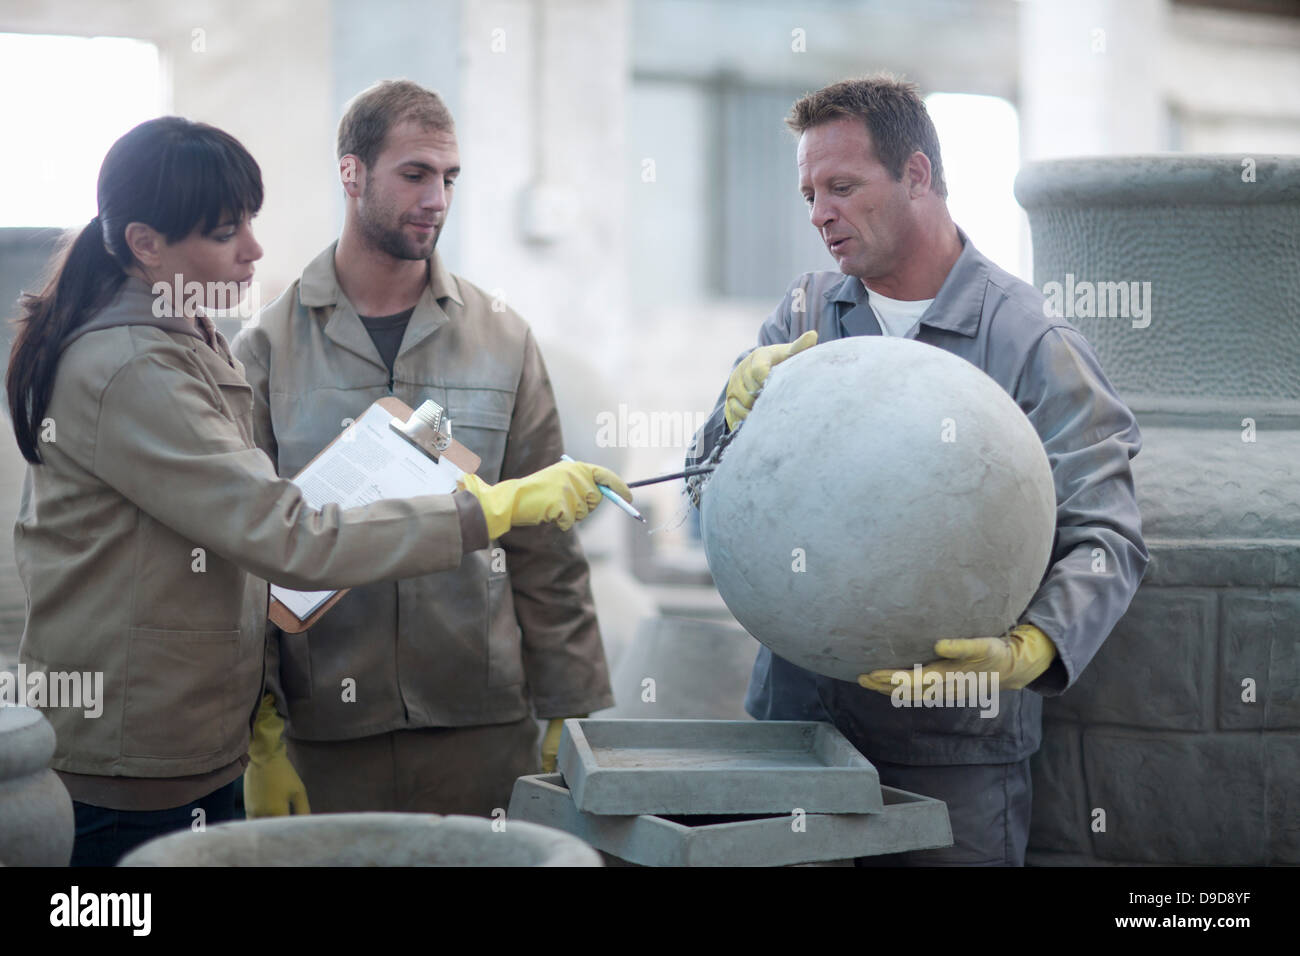 Dealing with sales in pottery factory - Stock Image